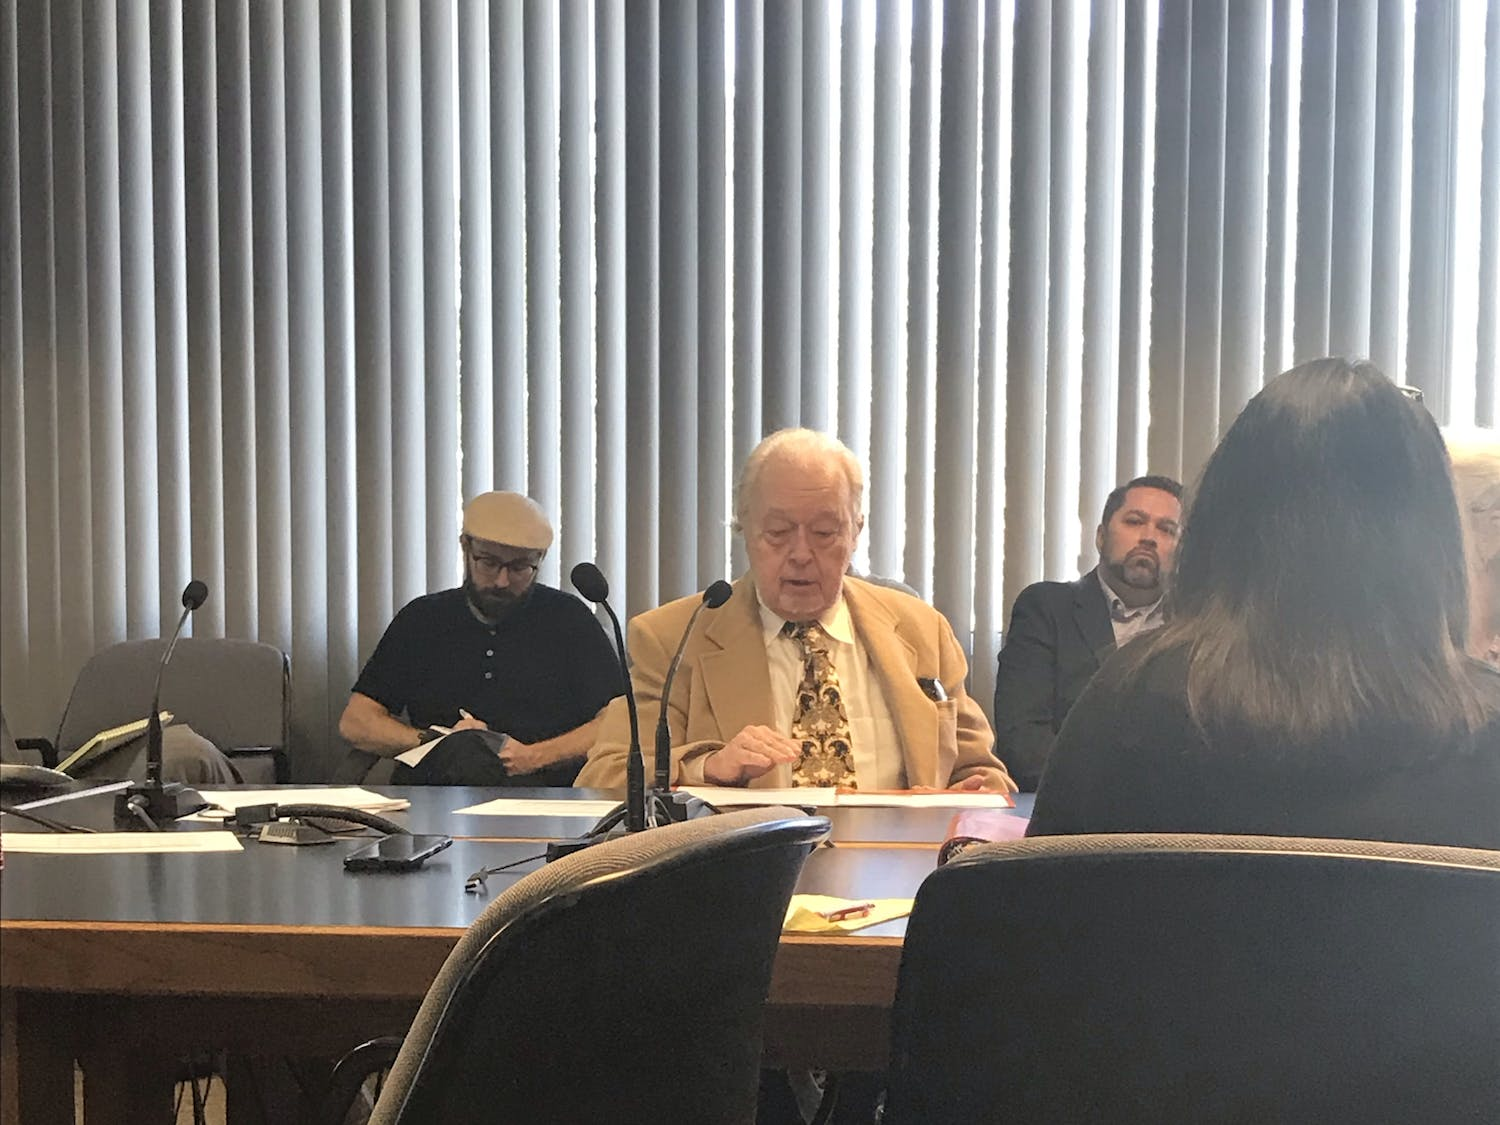 Bruce Blackwell, 77, of Gainesville, spoke in support of the conversion therapy ban. He said after hearing the story of a man who experienced suicidal thoughts after undergoing the therapy, it was up to him to right the wrongs of others.